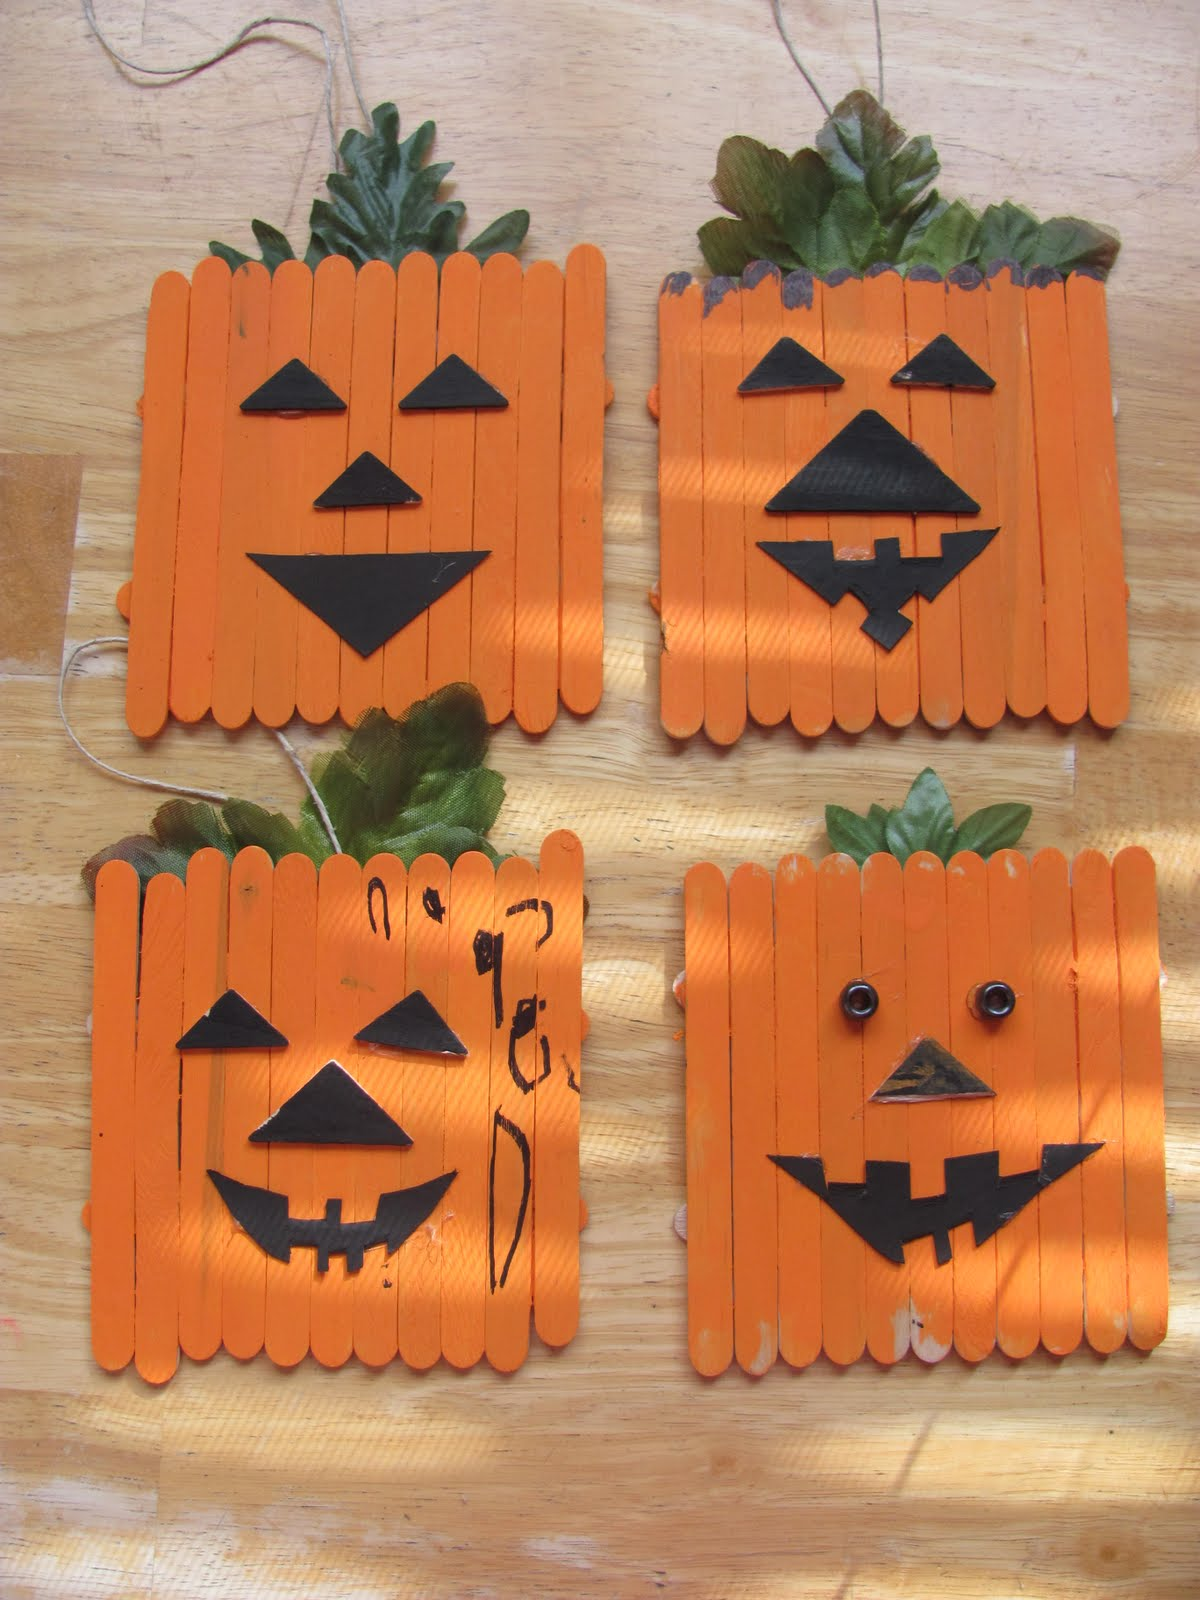 Popsicle Halloween Craft Pumpkin